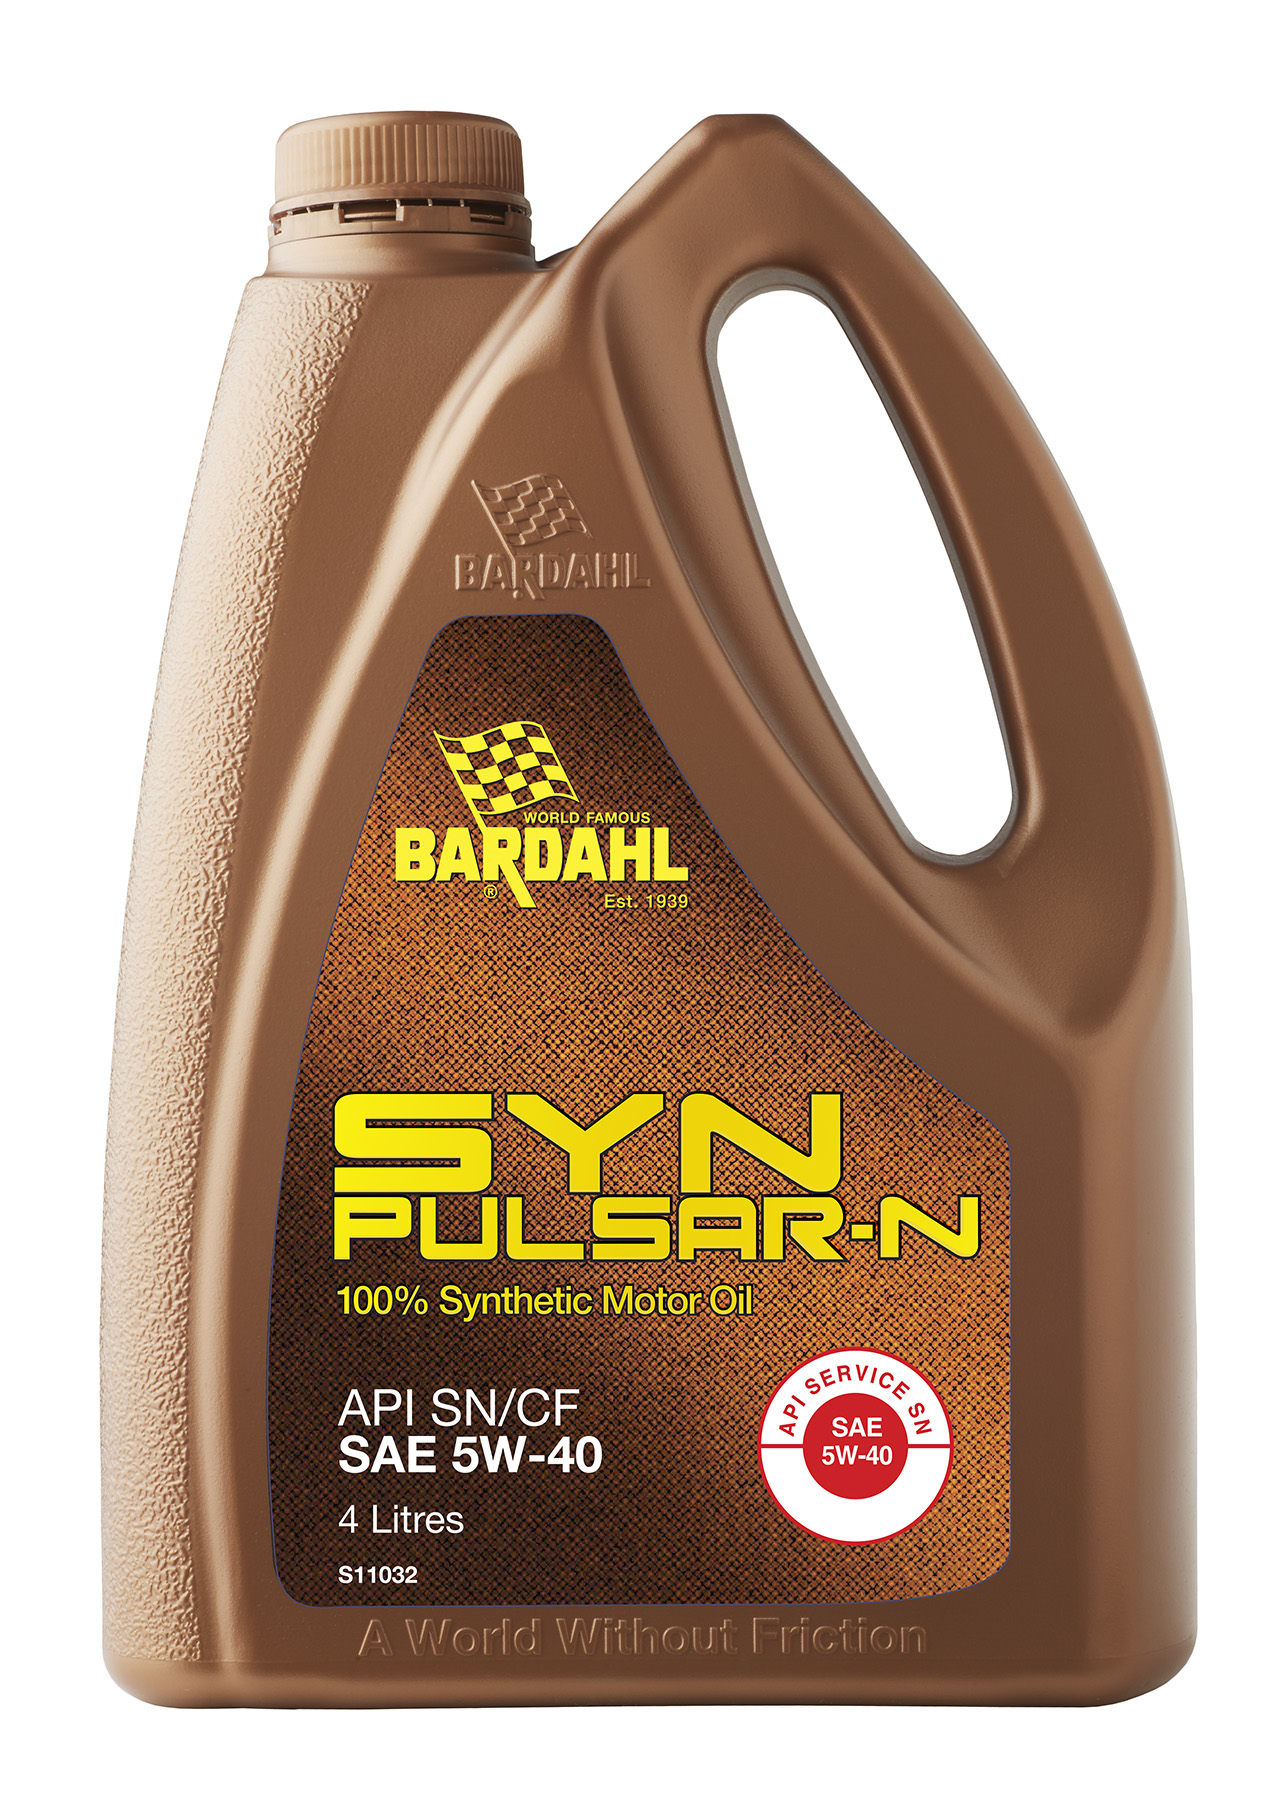 Bardahl SynPulsar-N - Car Servicing Engine Oil